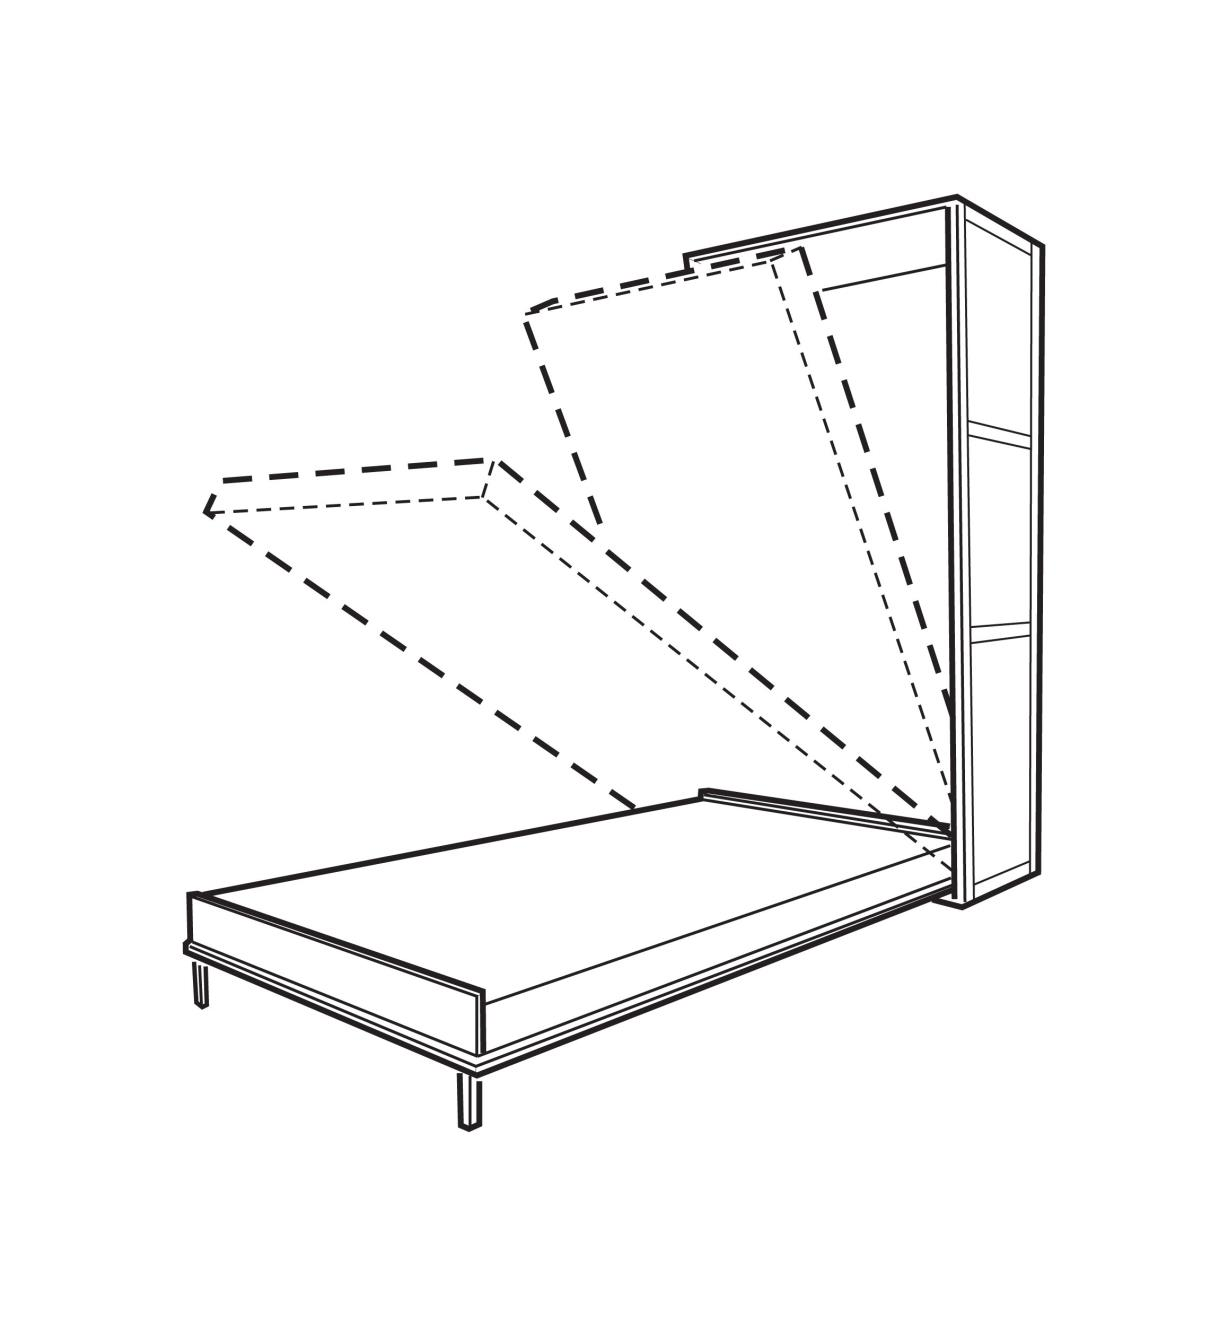 Spring Box Hardware for Fold-Down Beds